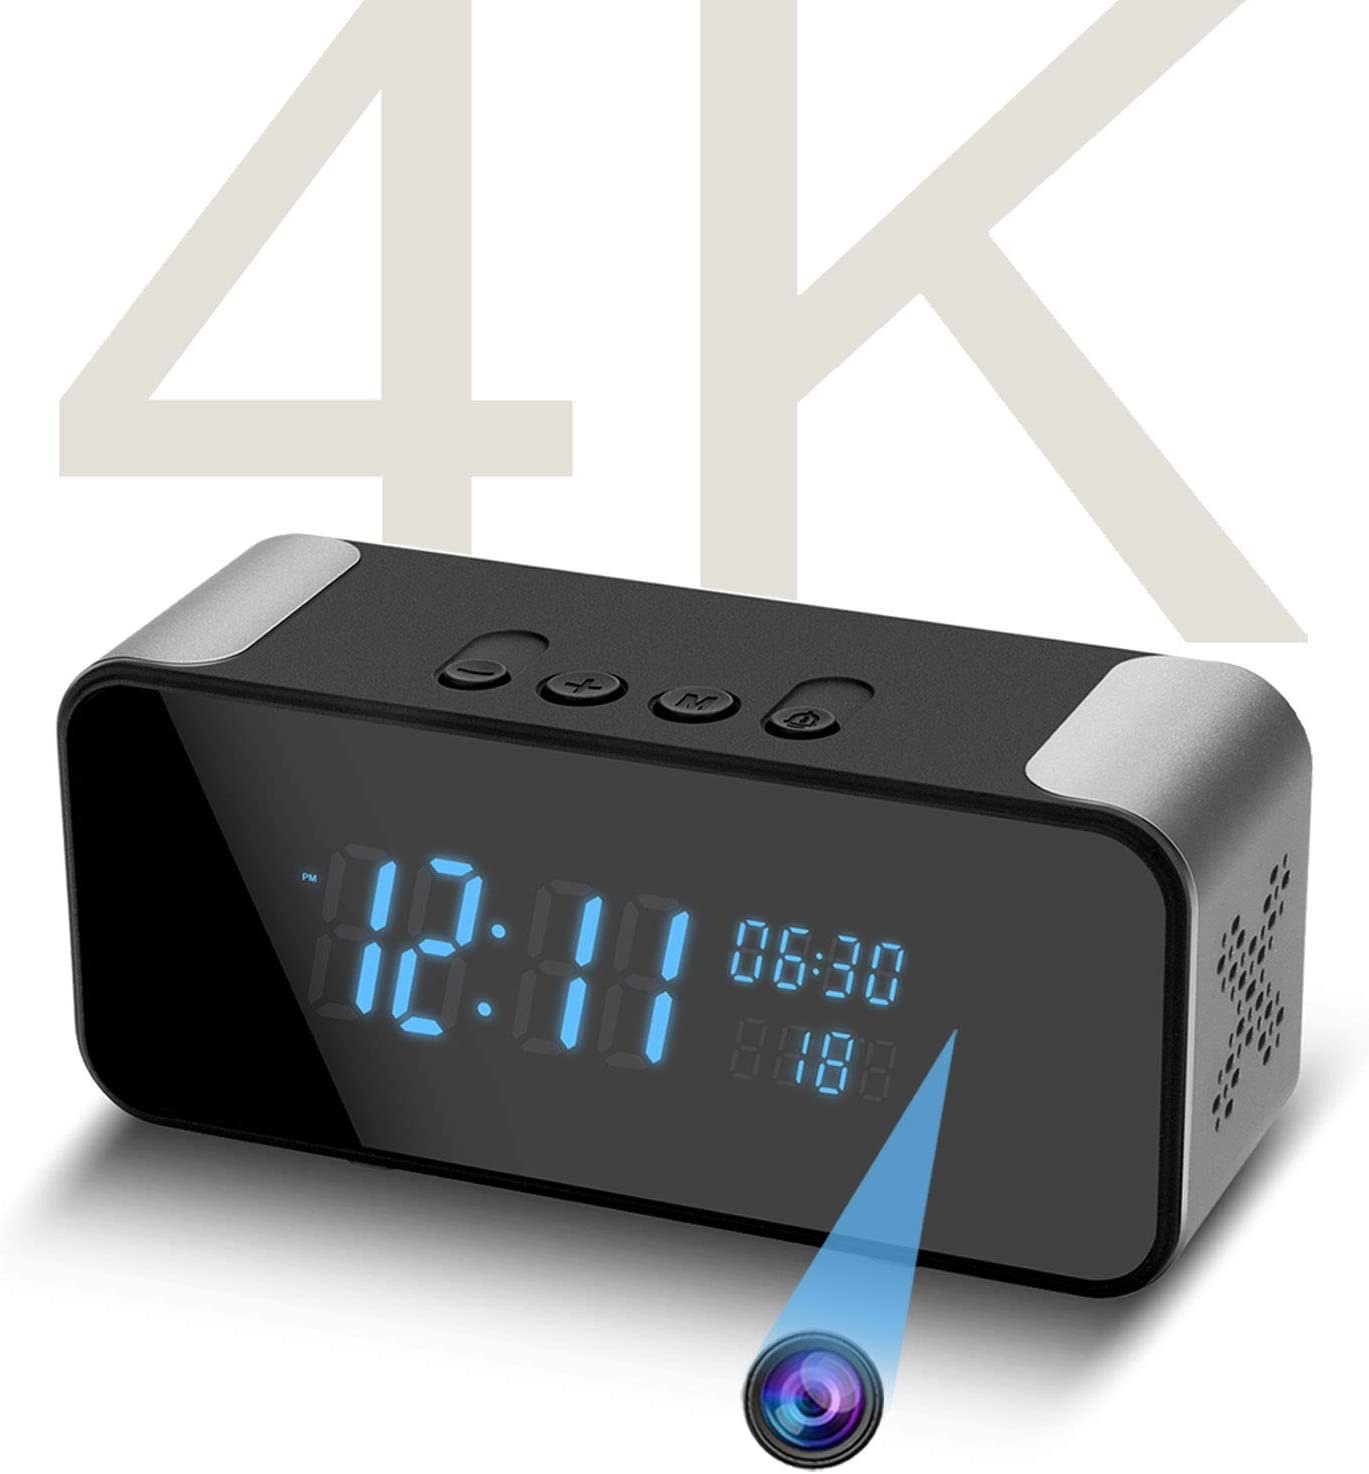 4K Hidden Spy Camera- Bluetooth Speaker- Alarm Clock, Wireless WiFi Pet/Baby/Nanny Camera, Motion Detection Alert, Remote Watching Live Streaming for Home/Office Indoor Monitoring - by Amzcev